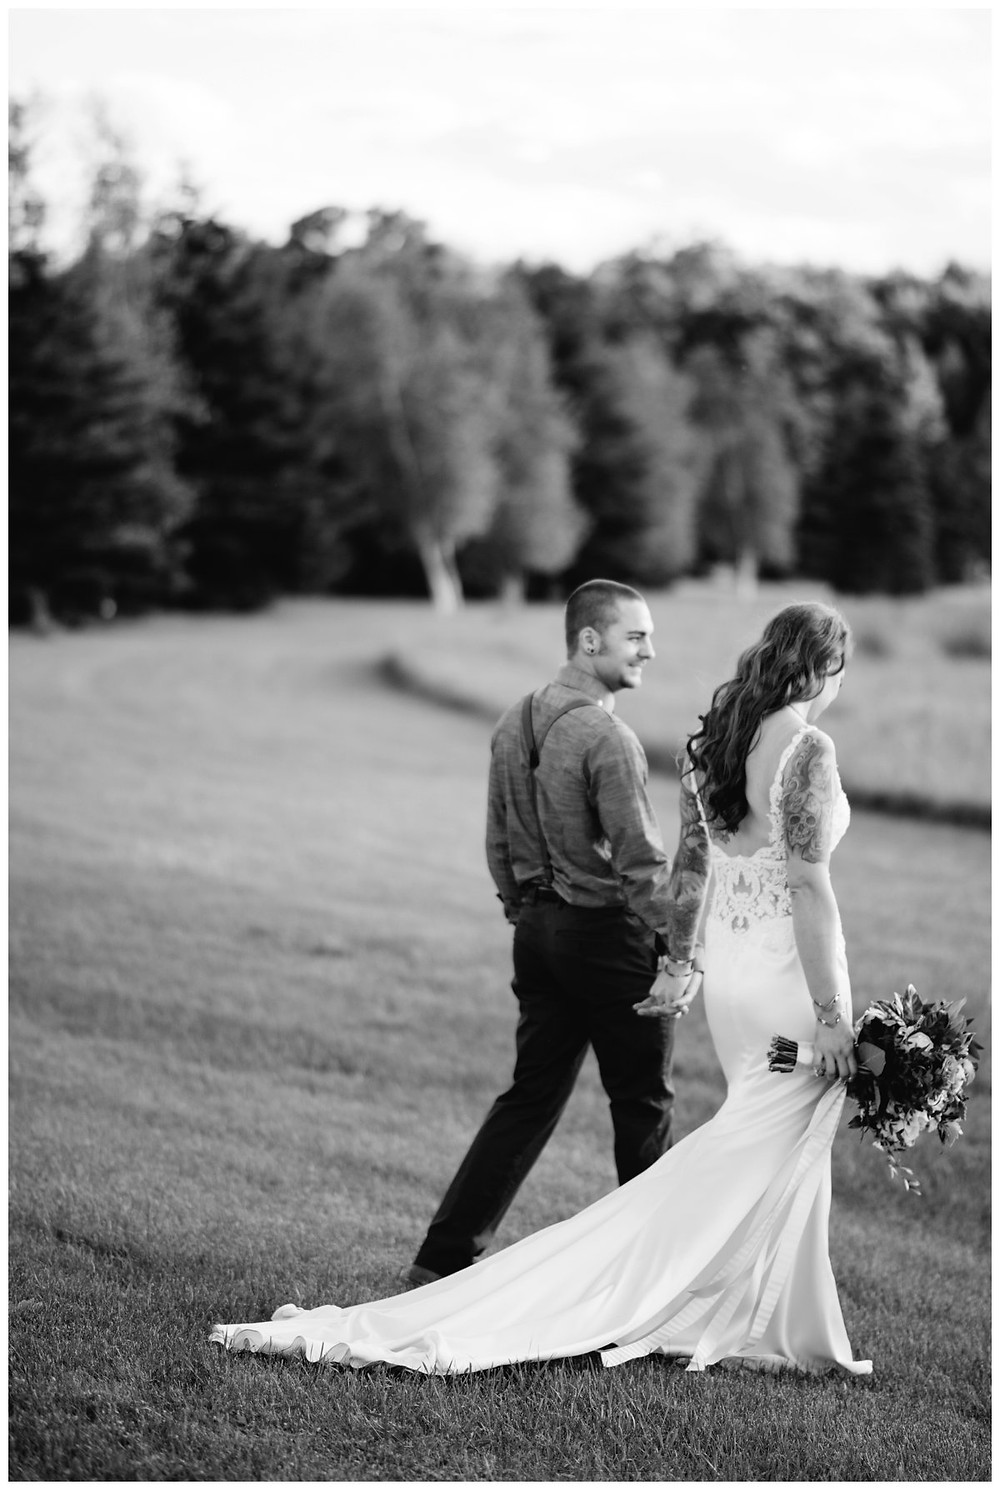 wedding-couple-walking-away-holding-hands-at-homestead-meadows-styled-shoot-by-milwaukee-wedding-photographer-kyra-rane-photography